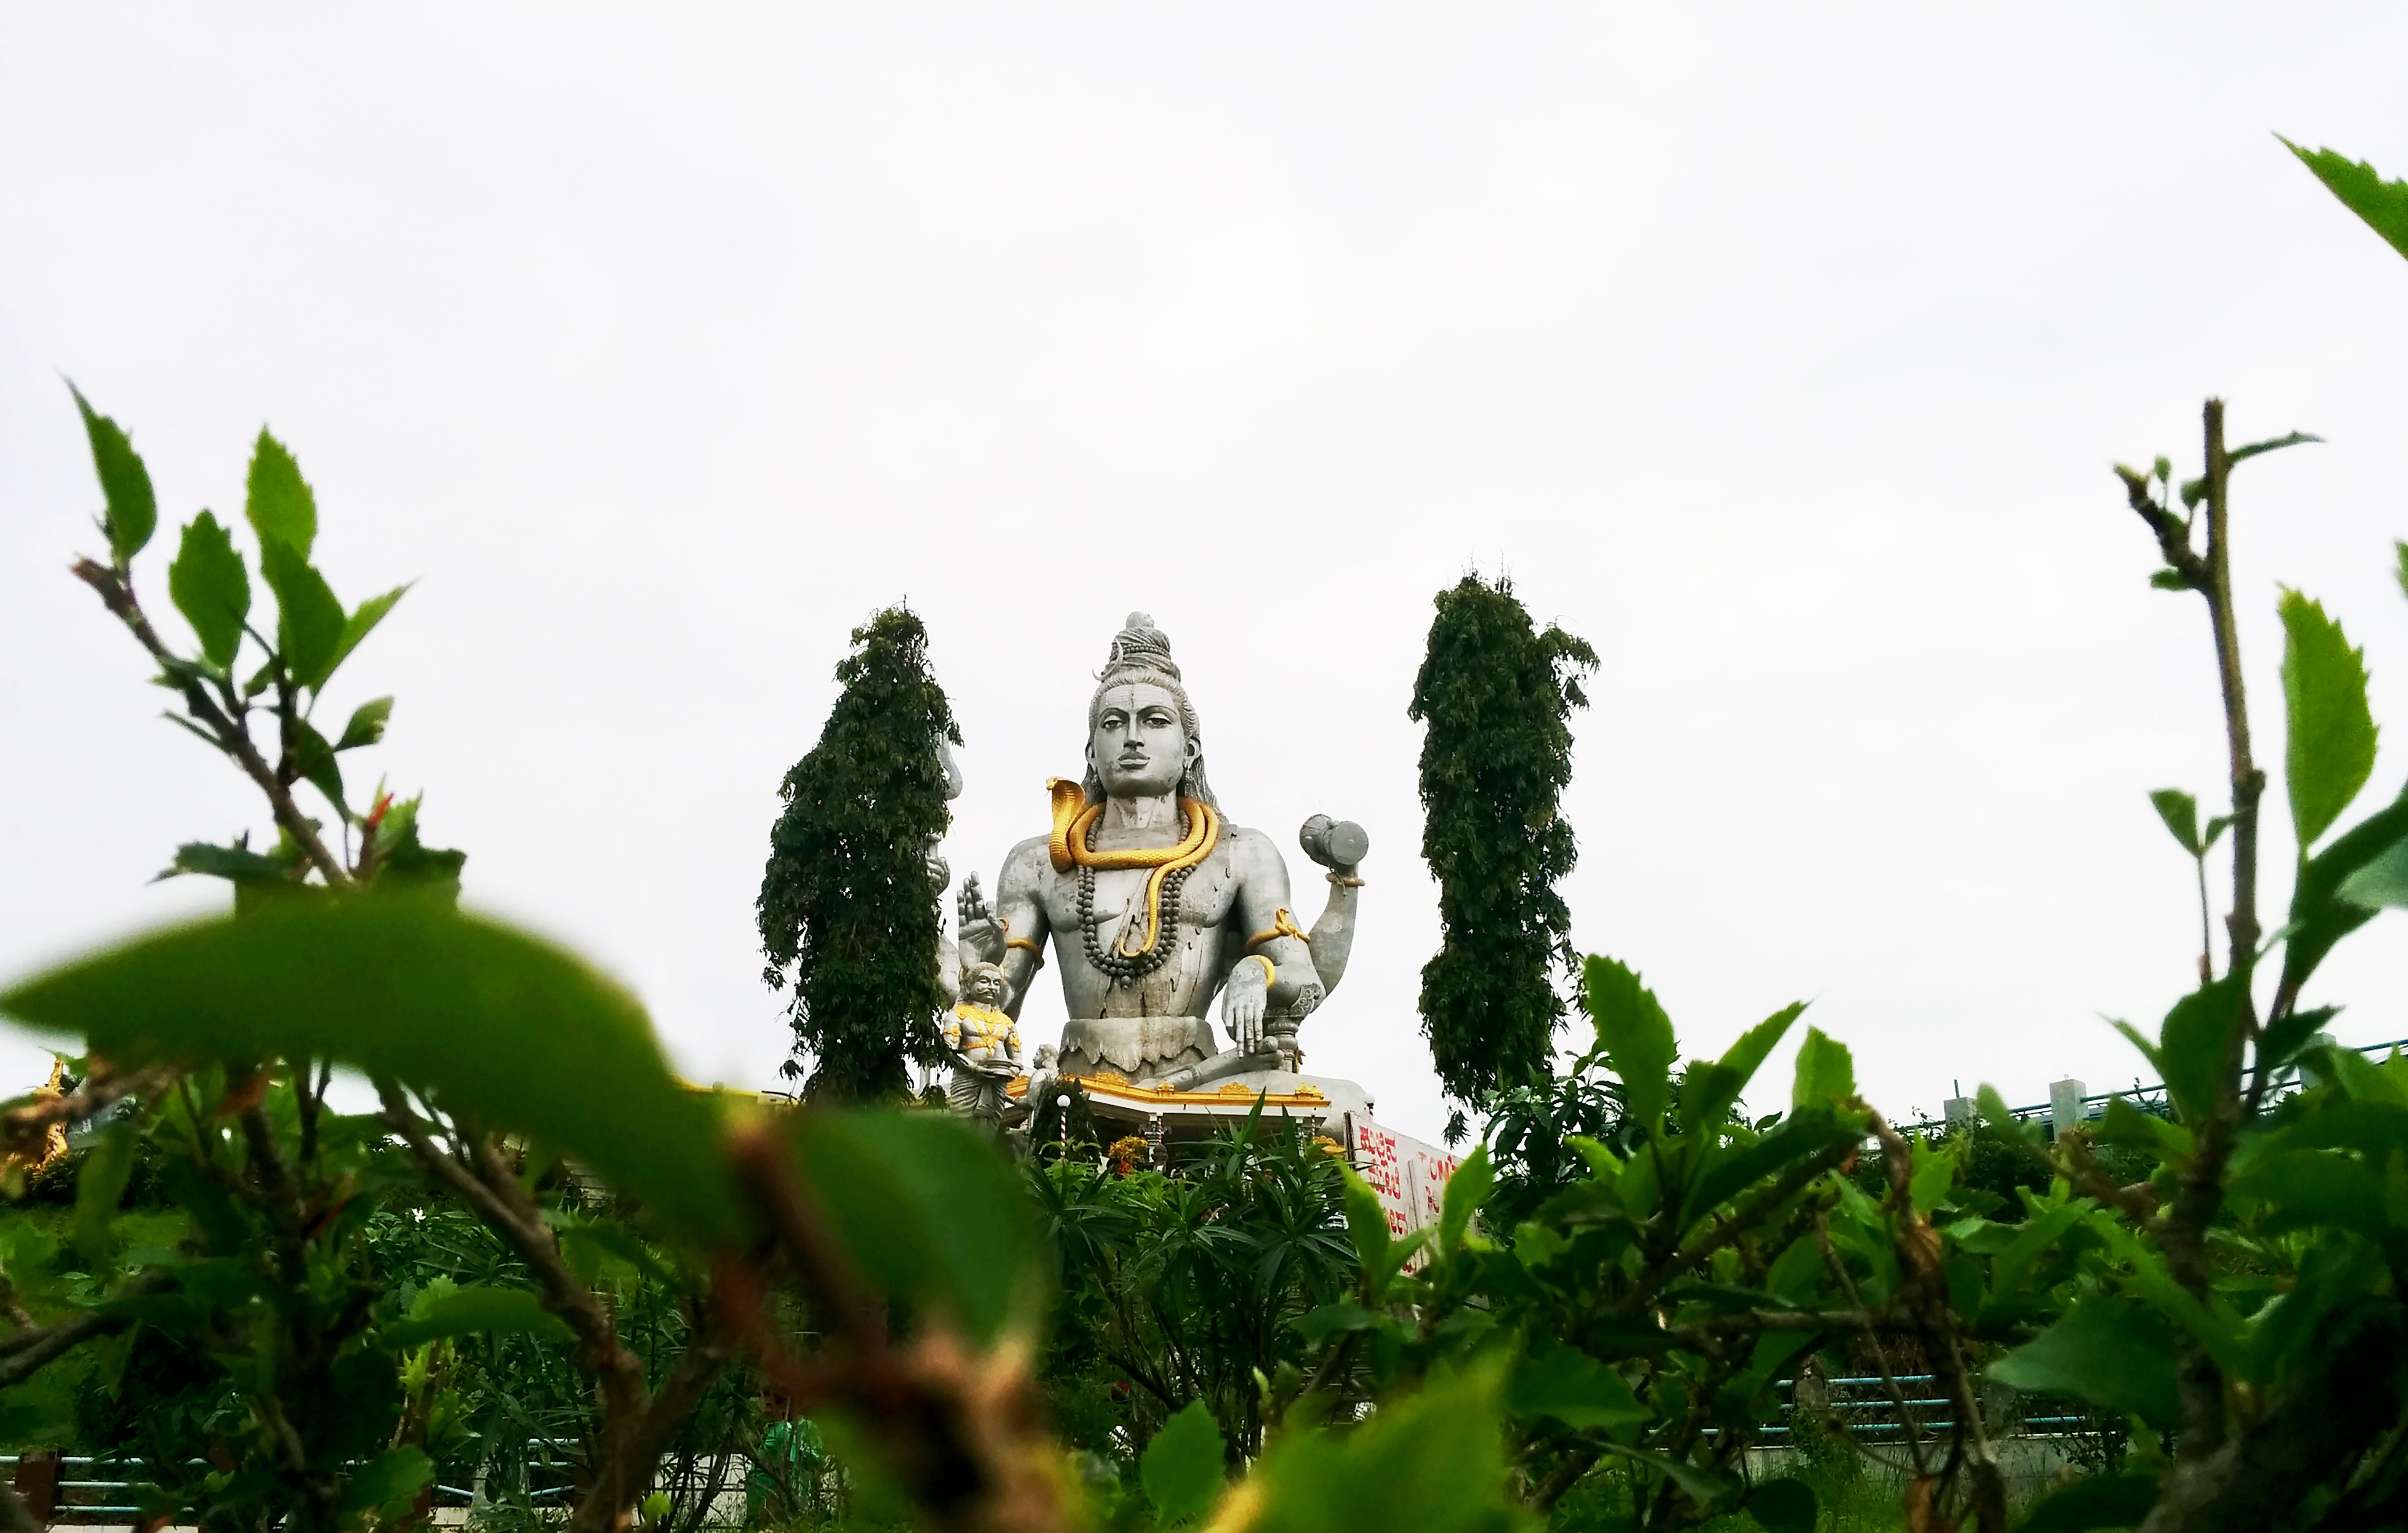 Statue on other side of green trees photo